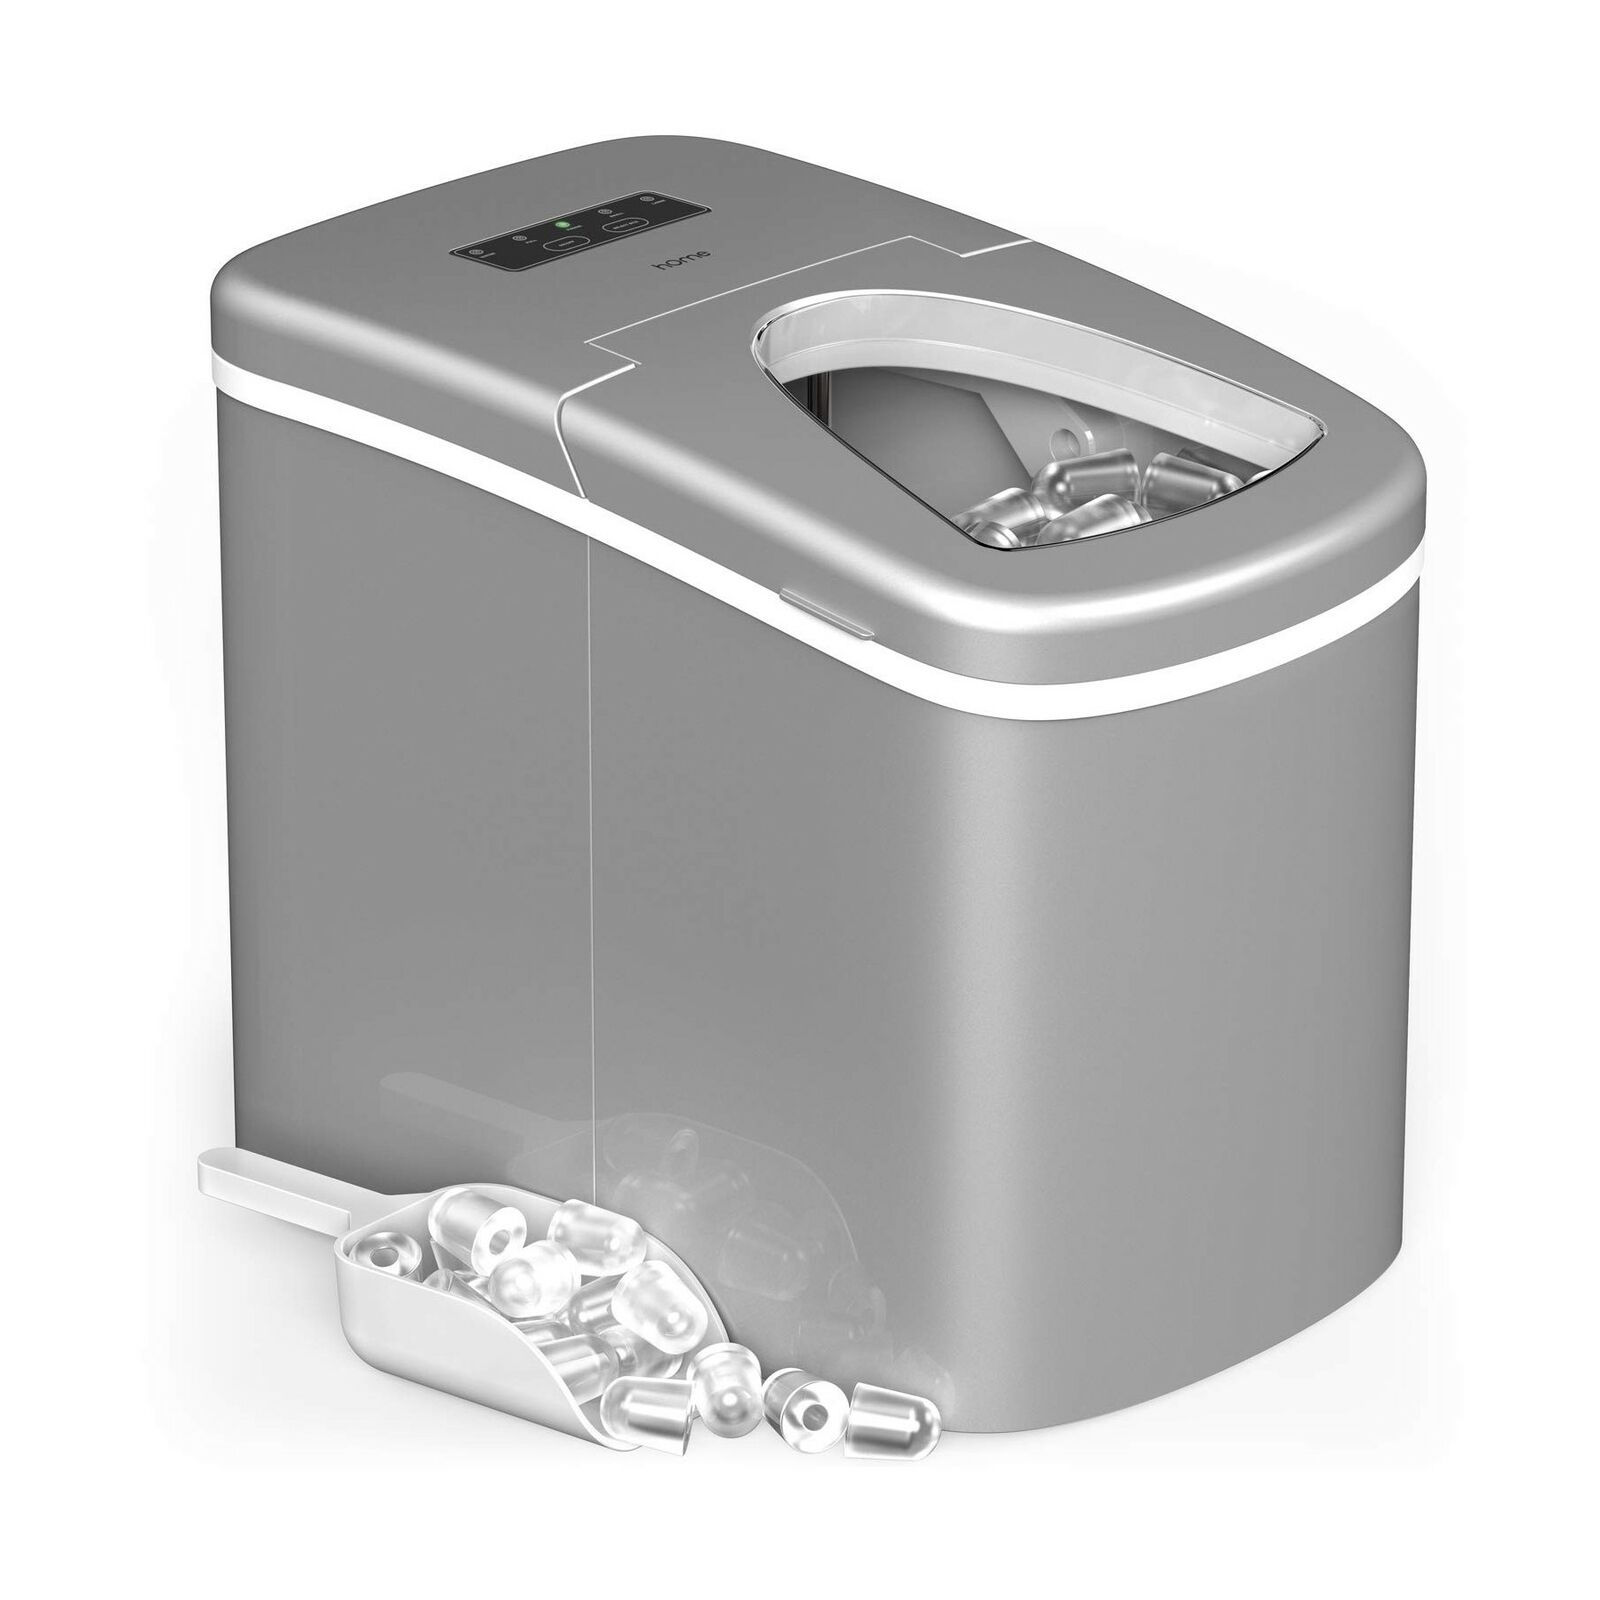 Home Portable Countertop Ice Maker Silver Hme010019n For Sale Online Ebay